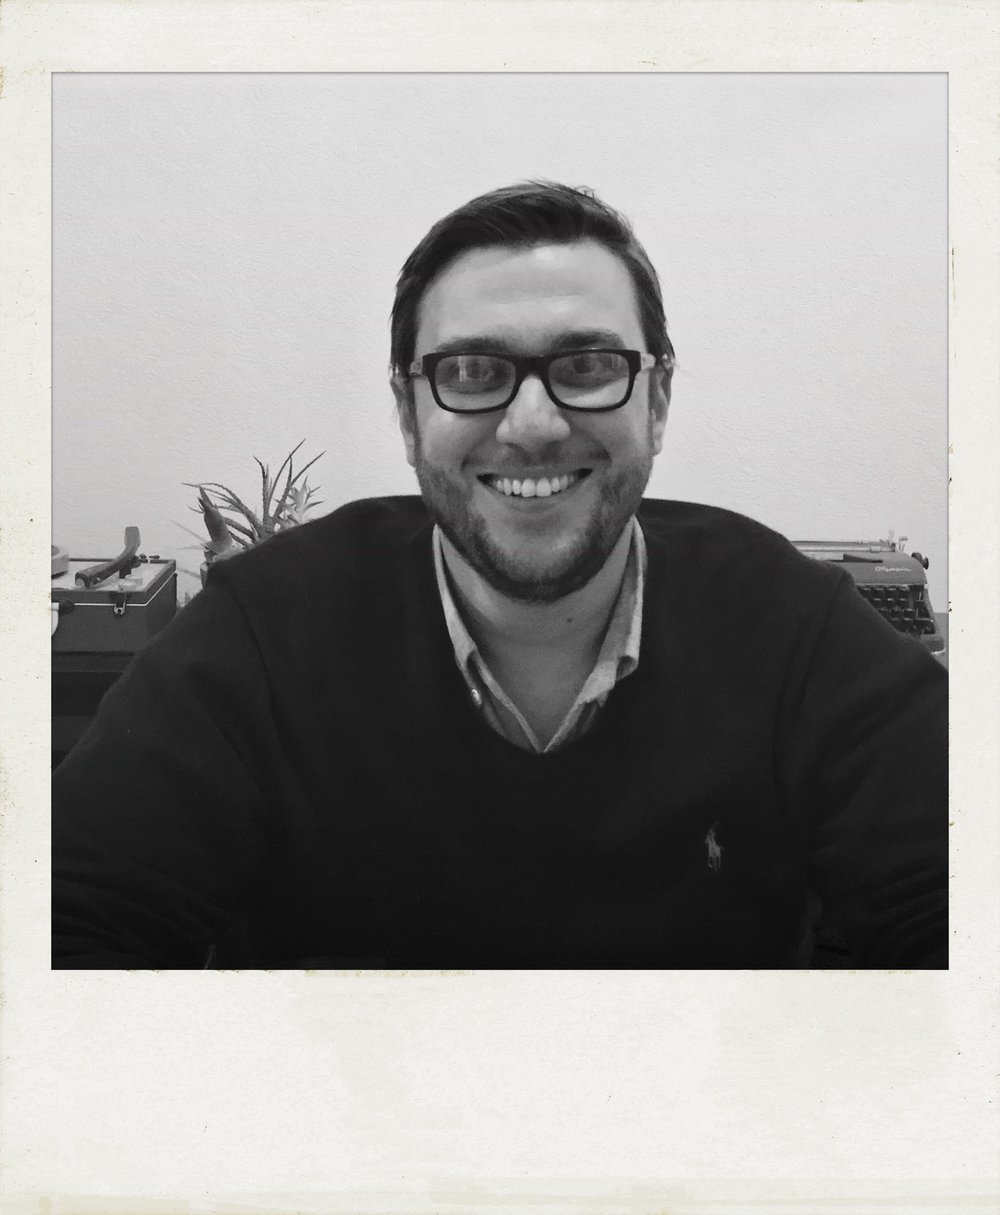 joel larosa - JOEL LAROSA IS THE FOUNDER OF JOEL LAROSA DESIGN, A LEICESTER BASED INTERIOR DESIGN AND PROJECT MANAGEMENT BUSINESS SPECIALISING IN BESPOKE KITCHENS AND BATHROOMS. JOEL LIVES IN LEICESTER WITH HIS WIFE AND PUGALIER KOIRA.